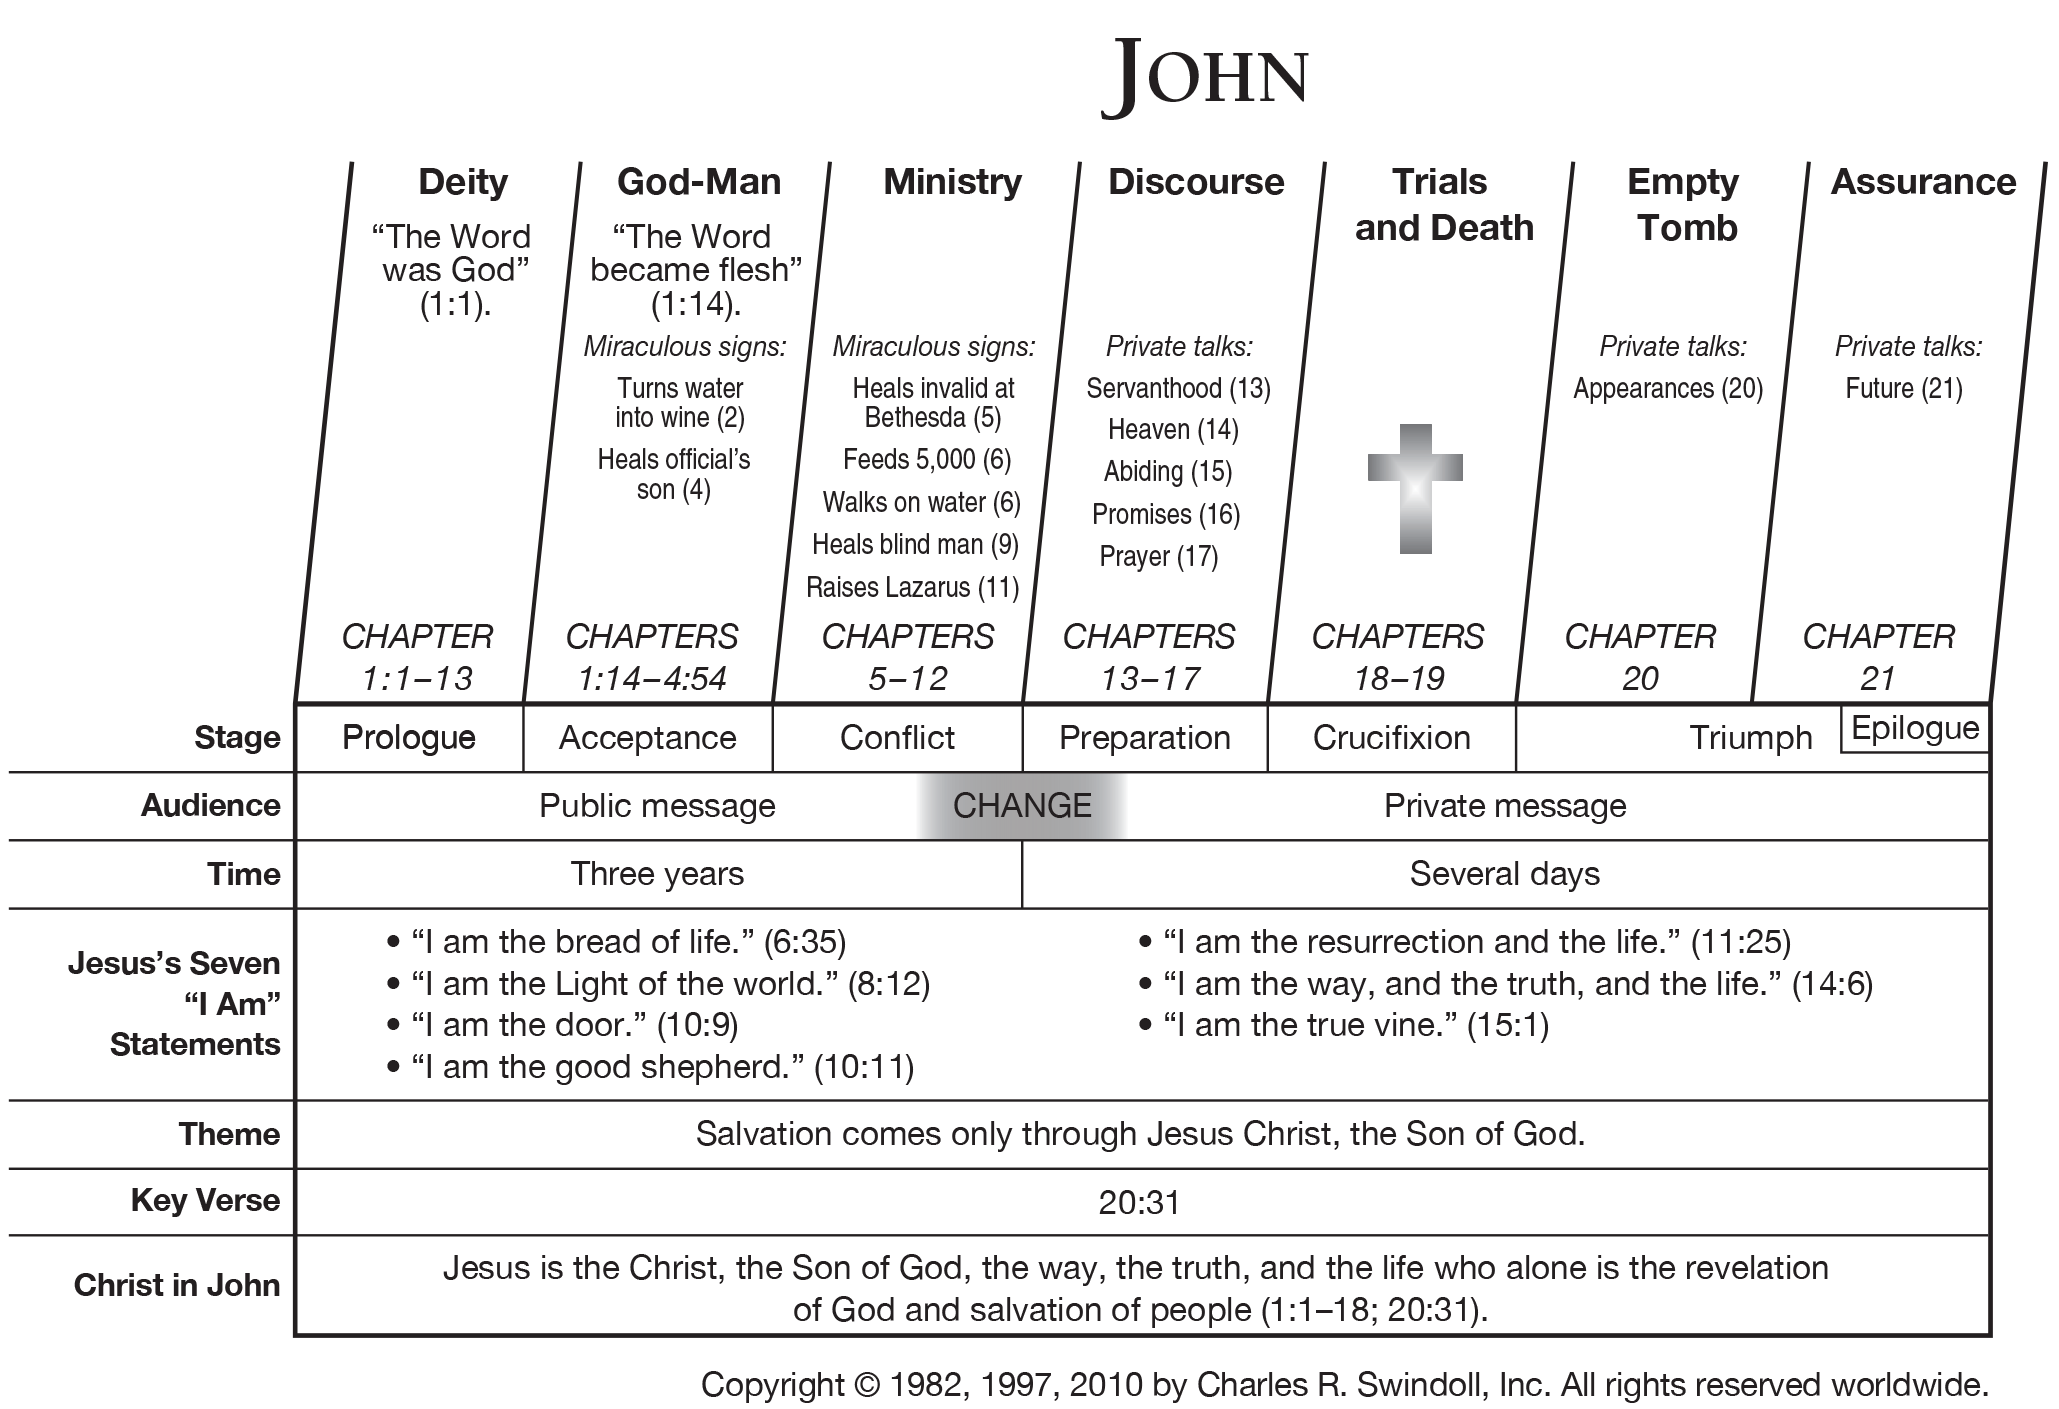 Book Of John Overview Bible Study John Bible Study Guide Bible Study Books